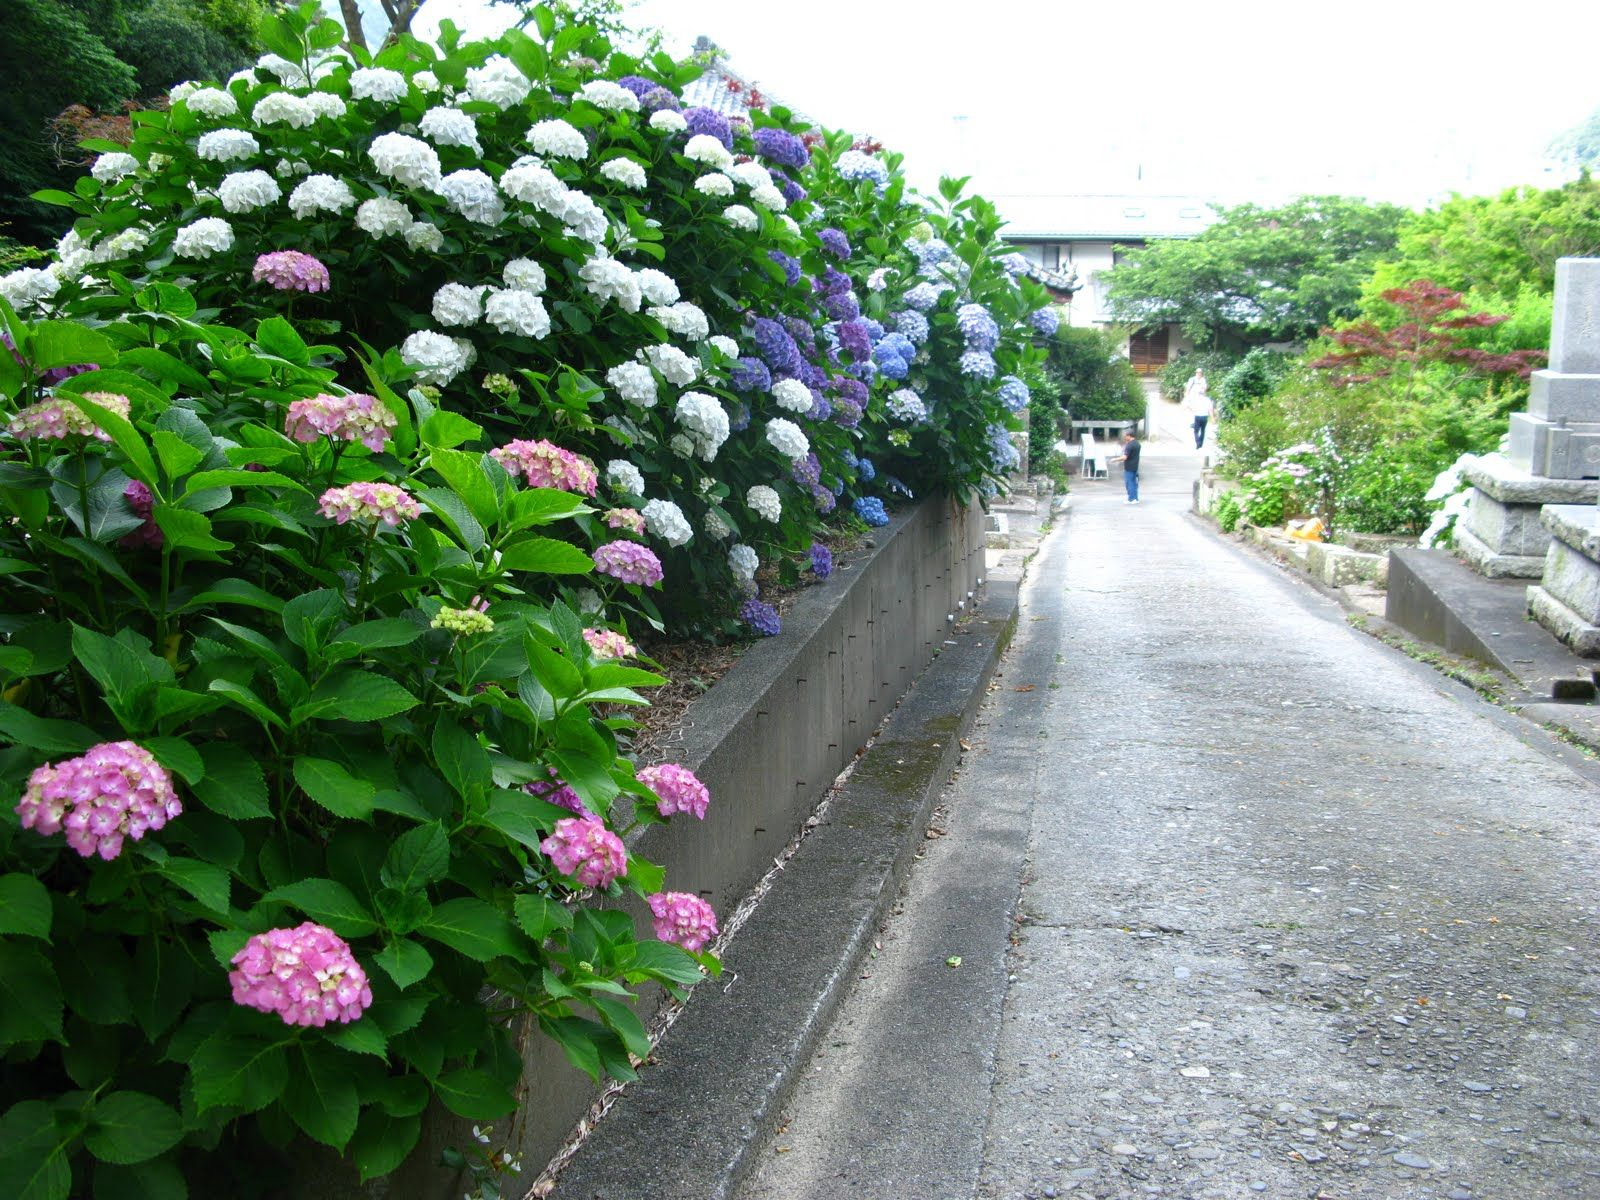 The Hydrangea Is Known In Japanese As The Ajisai Of Its Over 70 Species Most Of Them Are Native To China Korea And Hydrangea Season Hydrangea Seaside Towns